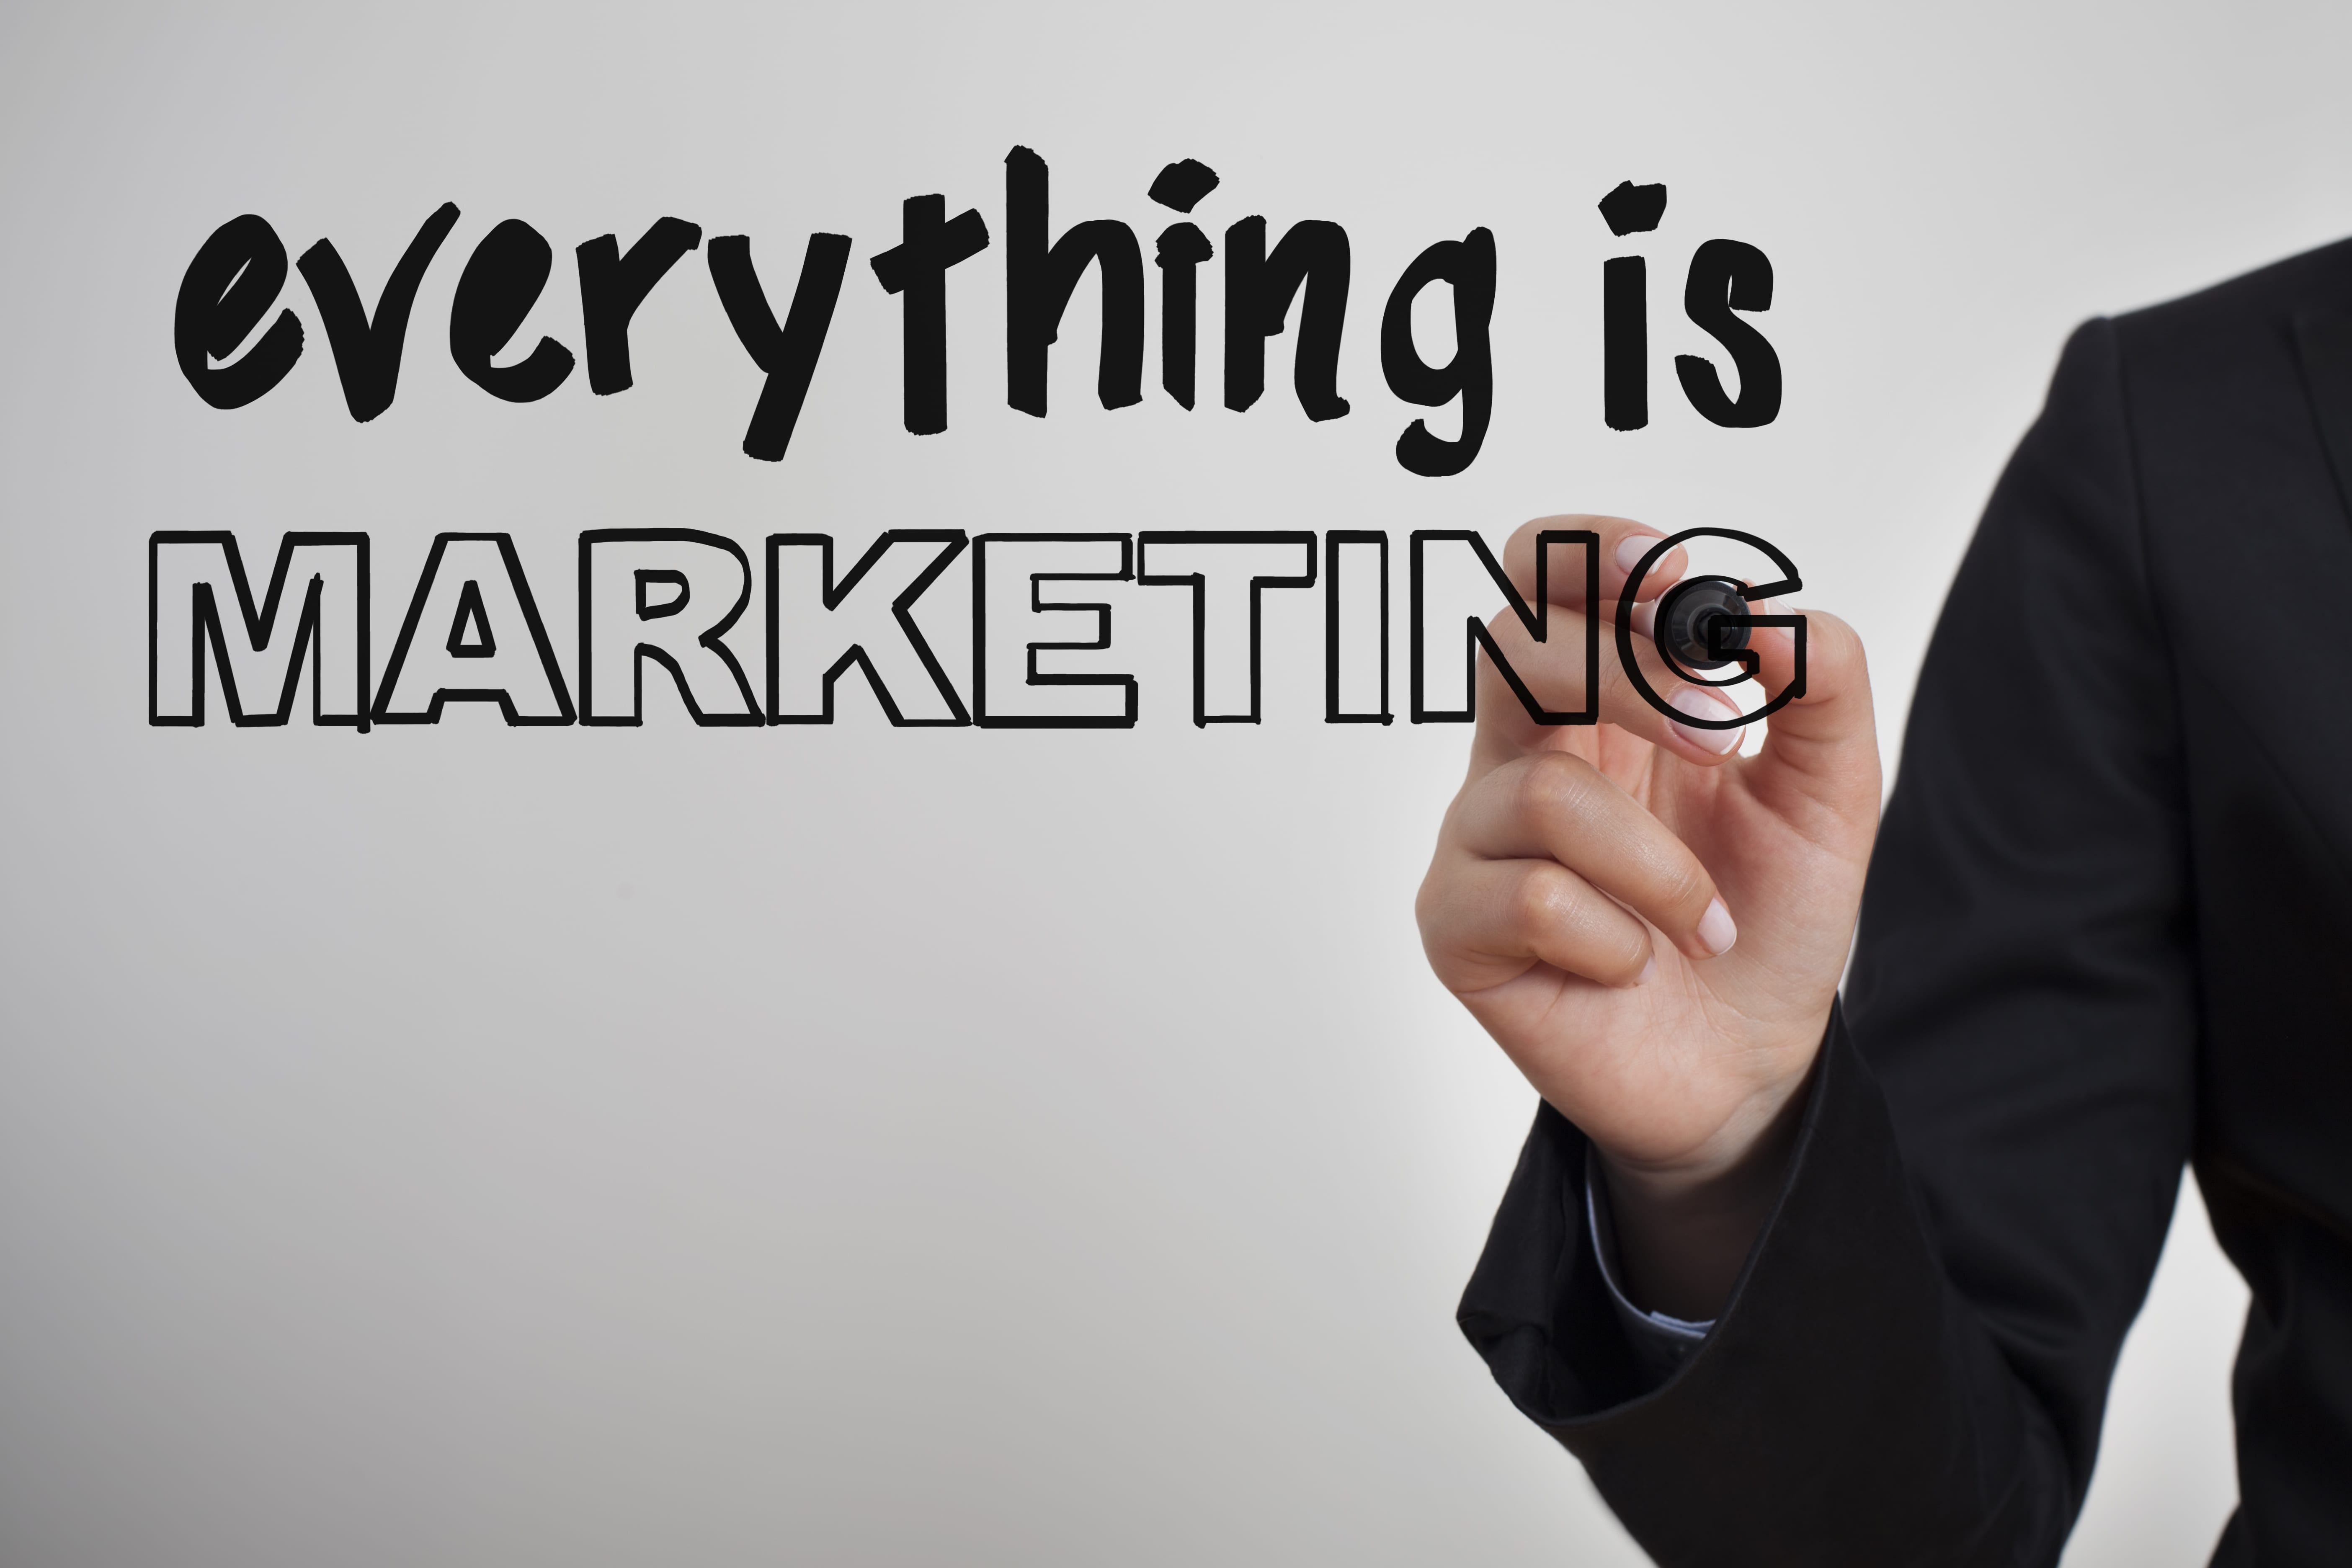 advertising is important for businesses Digital marketing is very important to businesses it provides you with cost effective measures for promotion like seo, social media and email marketing.